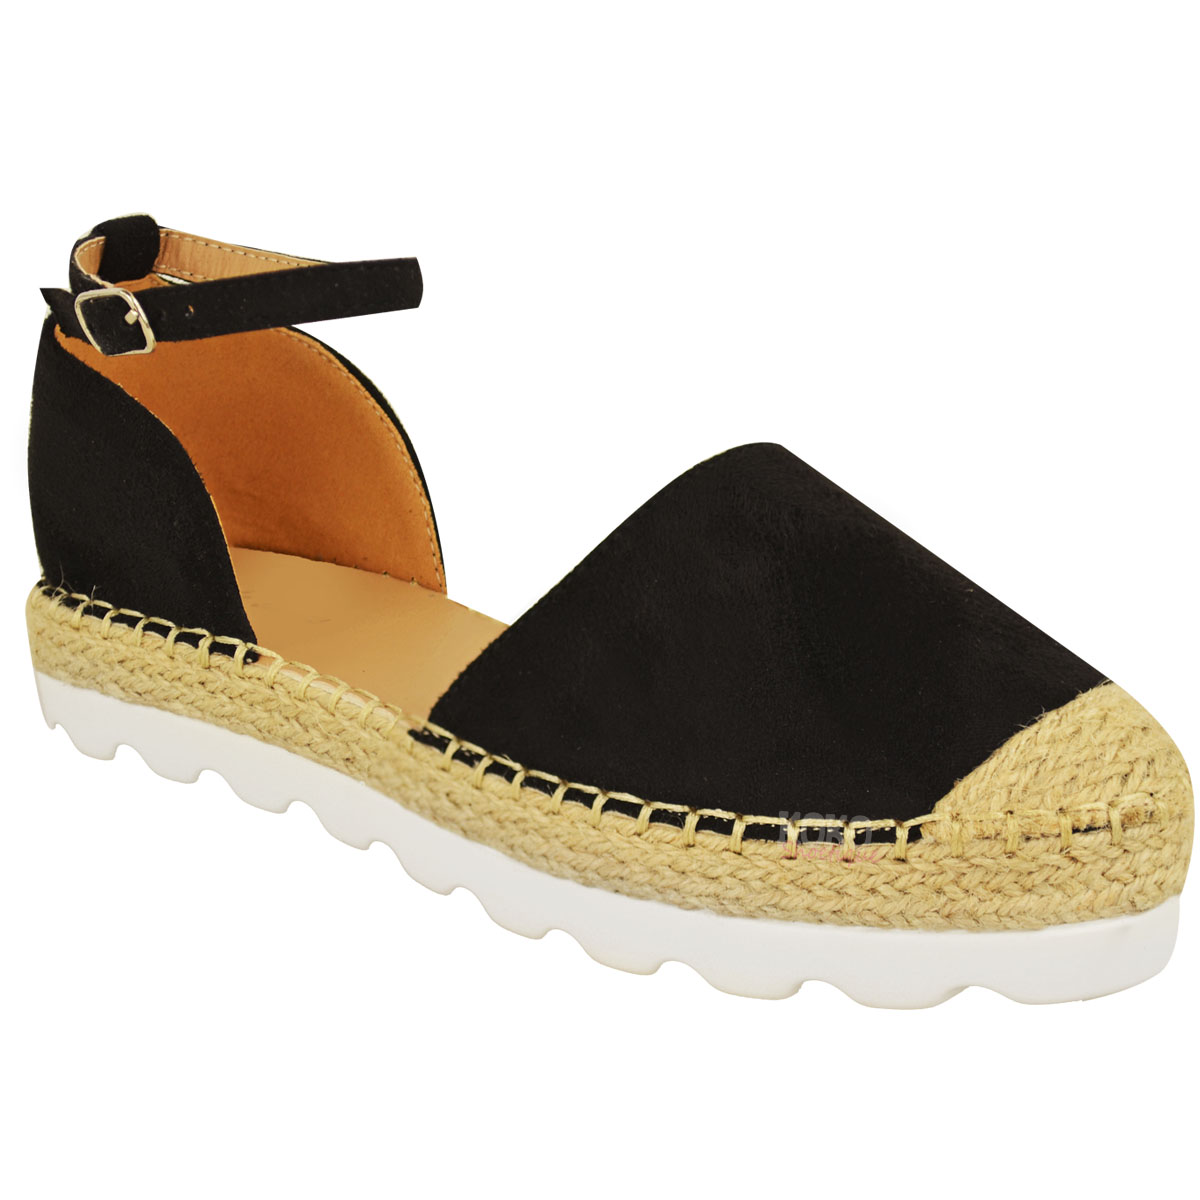 3cdd0ca34e2be Womens Ladies Ankle Strap Flat Sandals Moccasins Espadrilles Summer ...